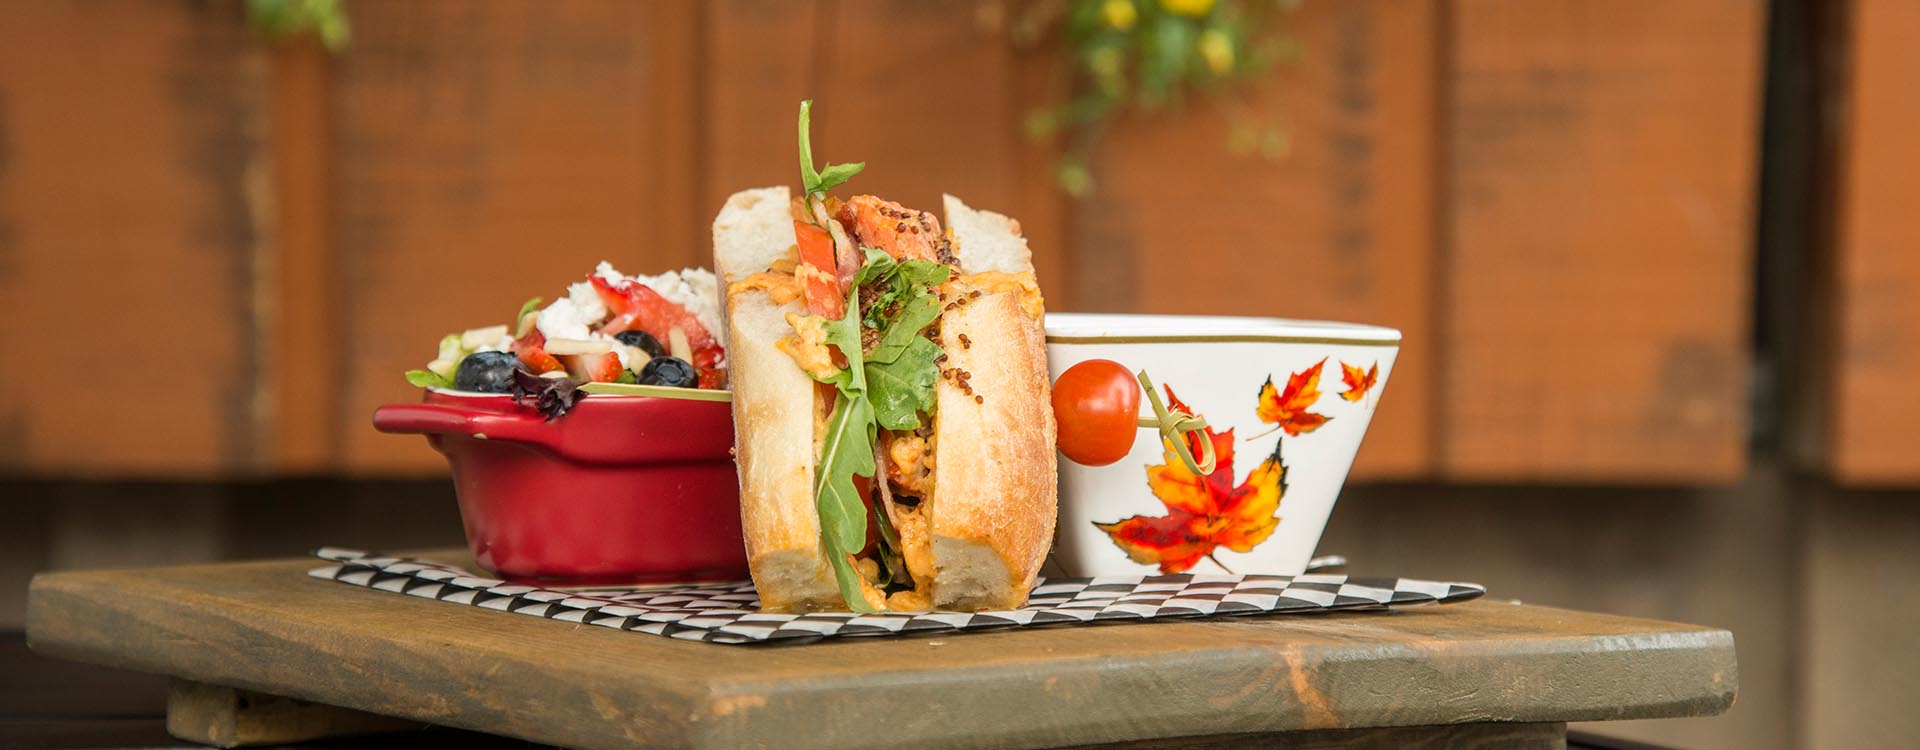 Blog Image - Restaurants That Offer Take-out or Delivery